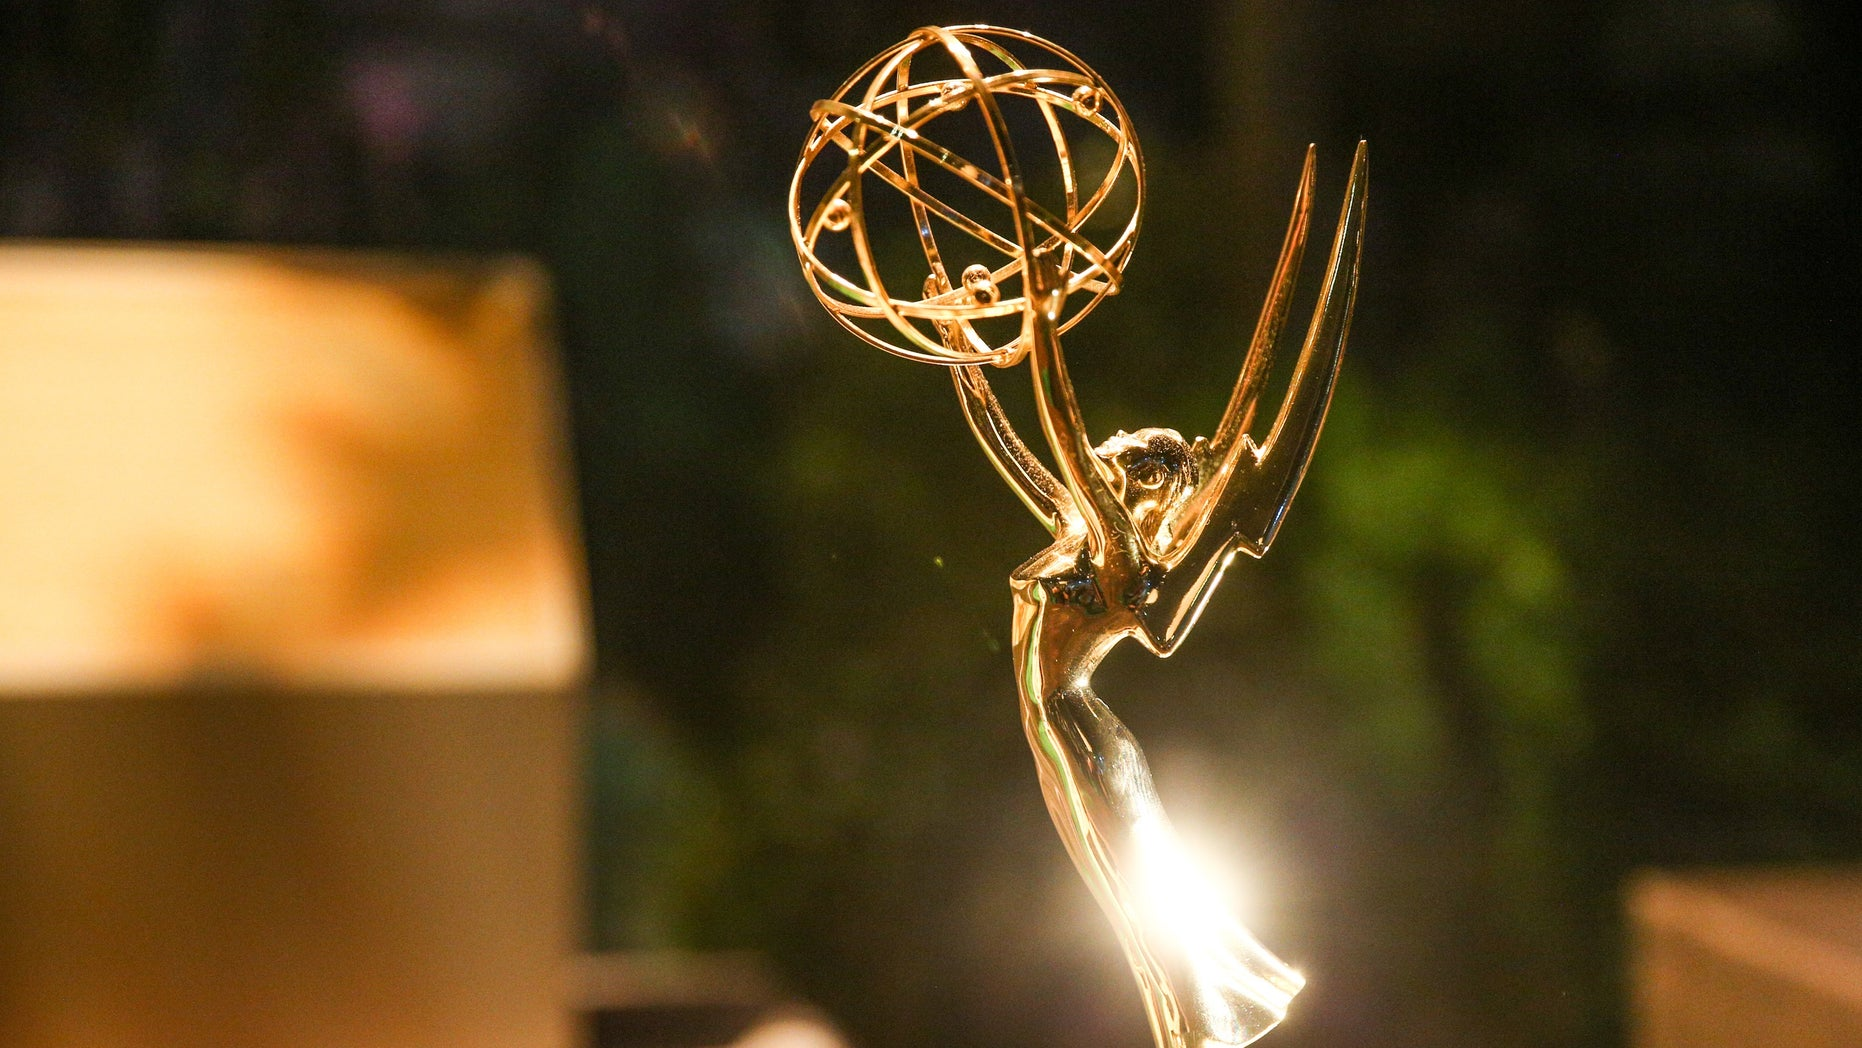 An Emmy statuette is displayed inside the Governor's Ball at the 2016 Primetime Emmy Awards Press Preview Day at the Los Angeles Convention Center on Wednesday, Sept. 14, 2016, in Los Angeles. (Photo by Rich Fury/Invision/AP)